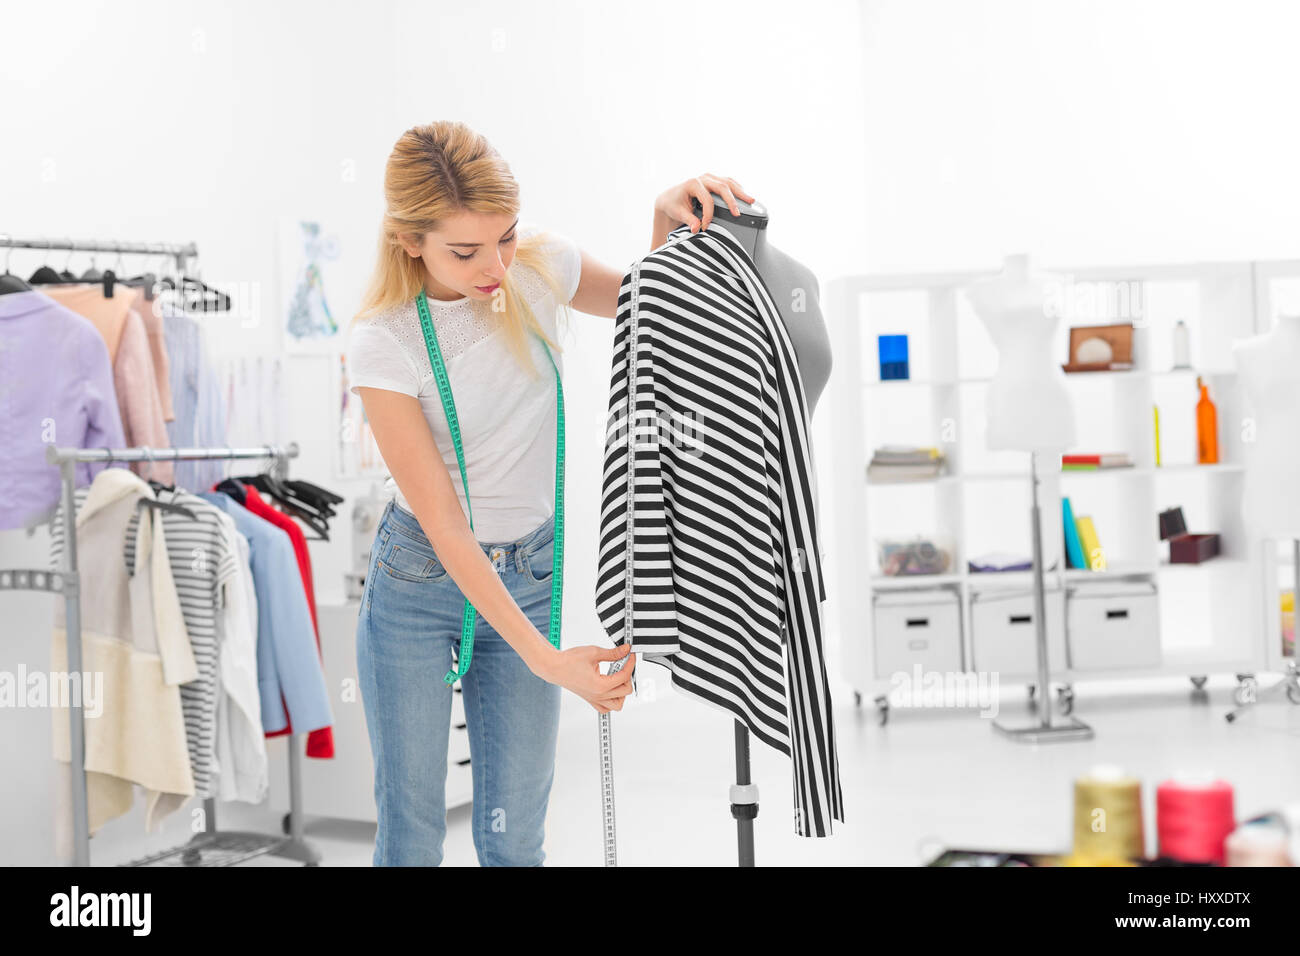 young fashion designer measuring fabric on mannequin - Stock Image